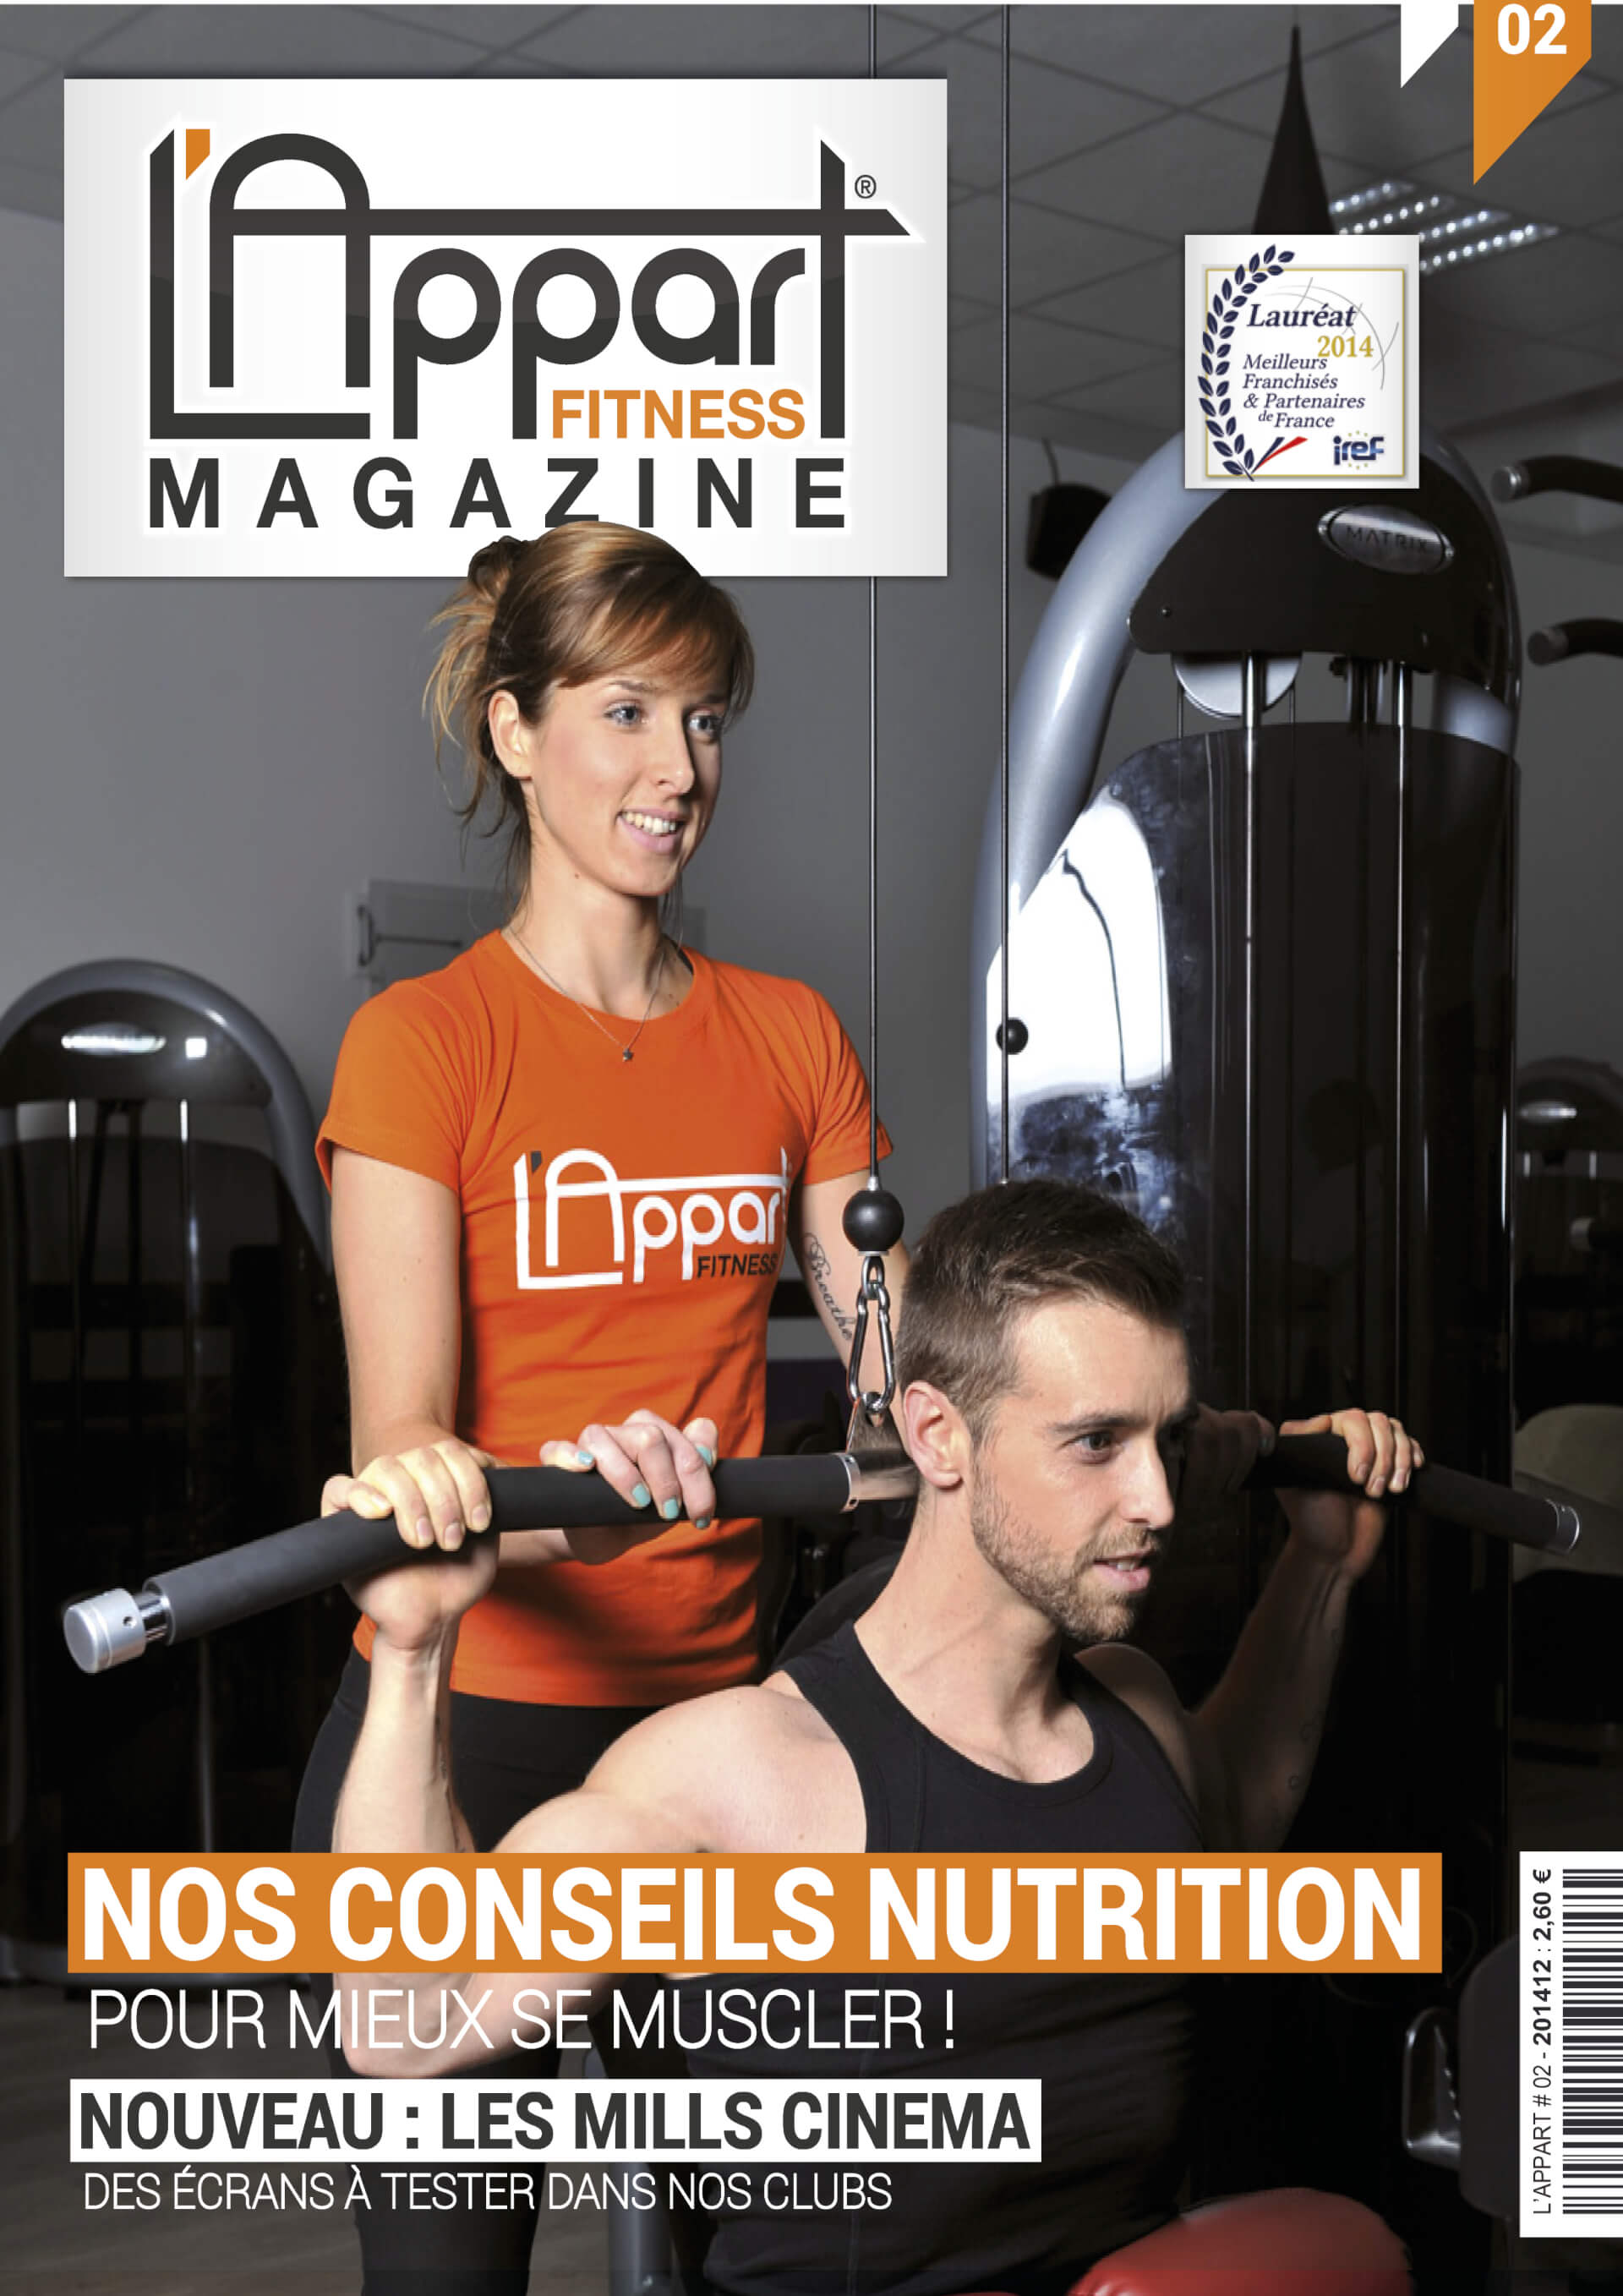 MAGAZINE L'APPART FITNESS N°2